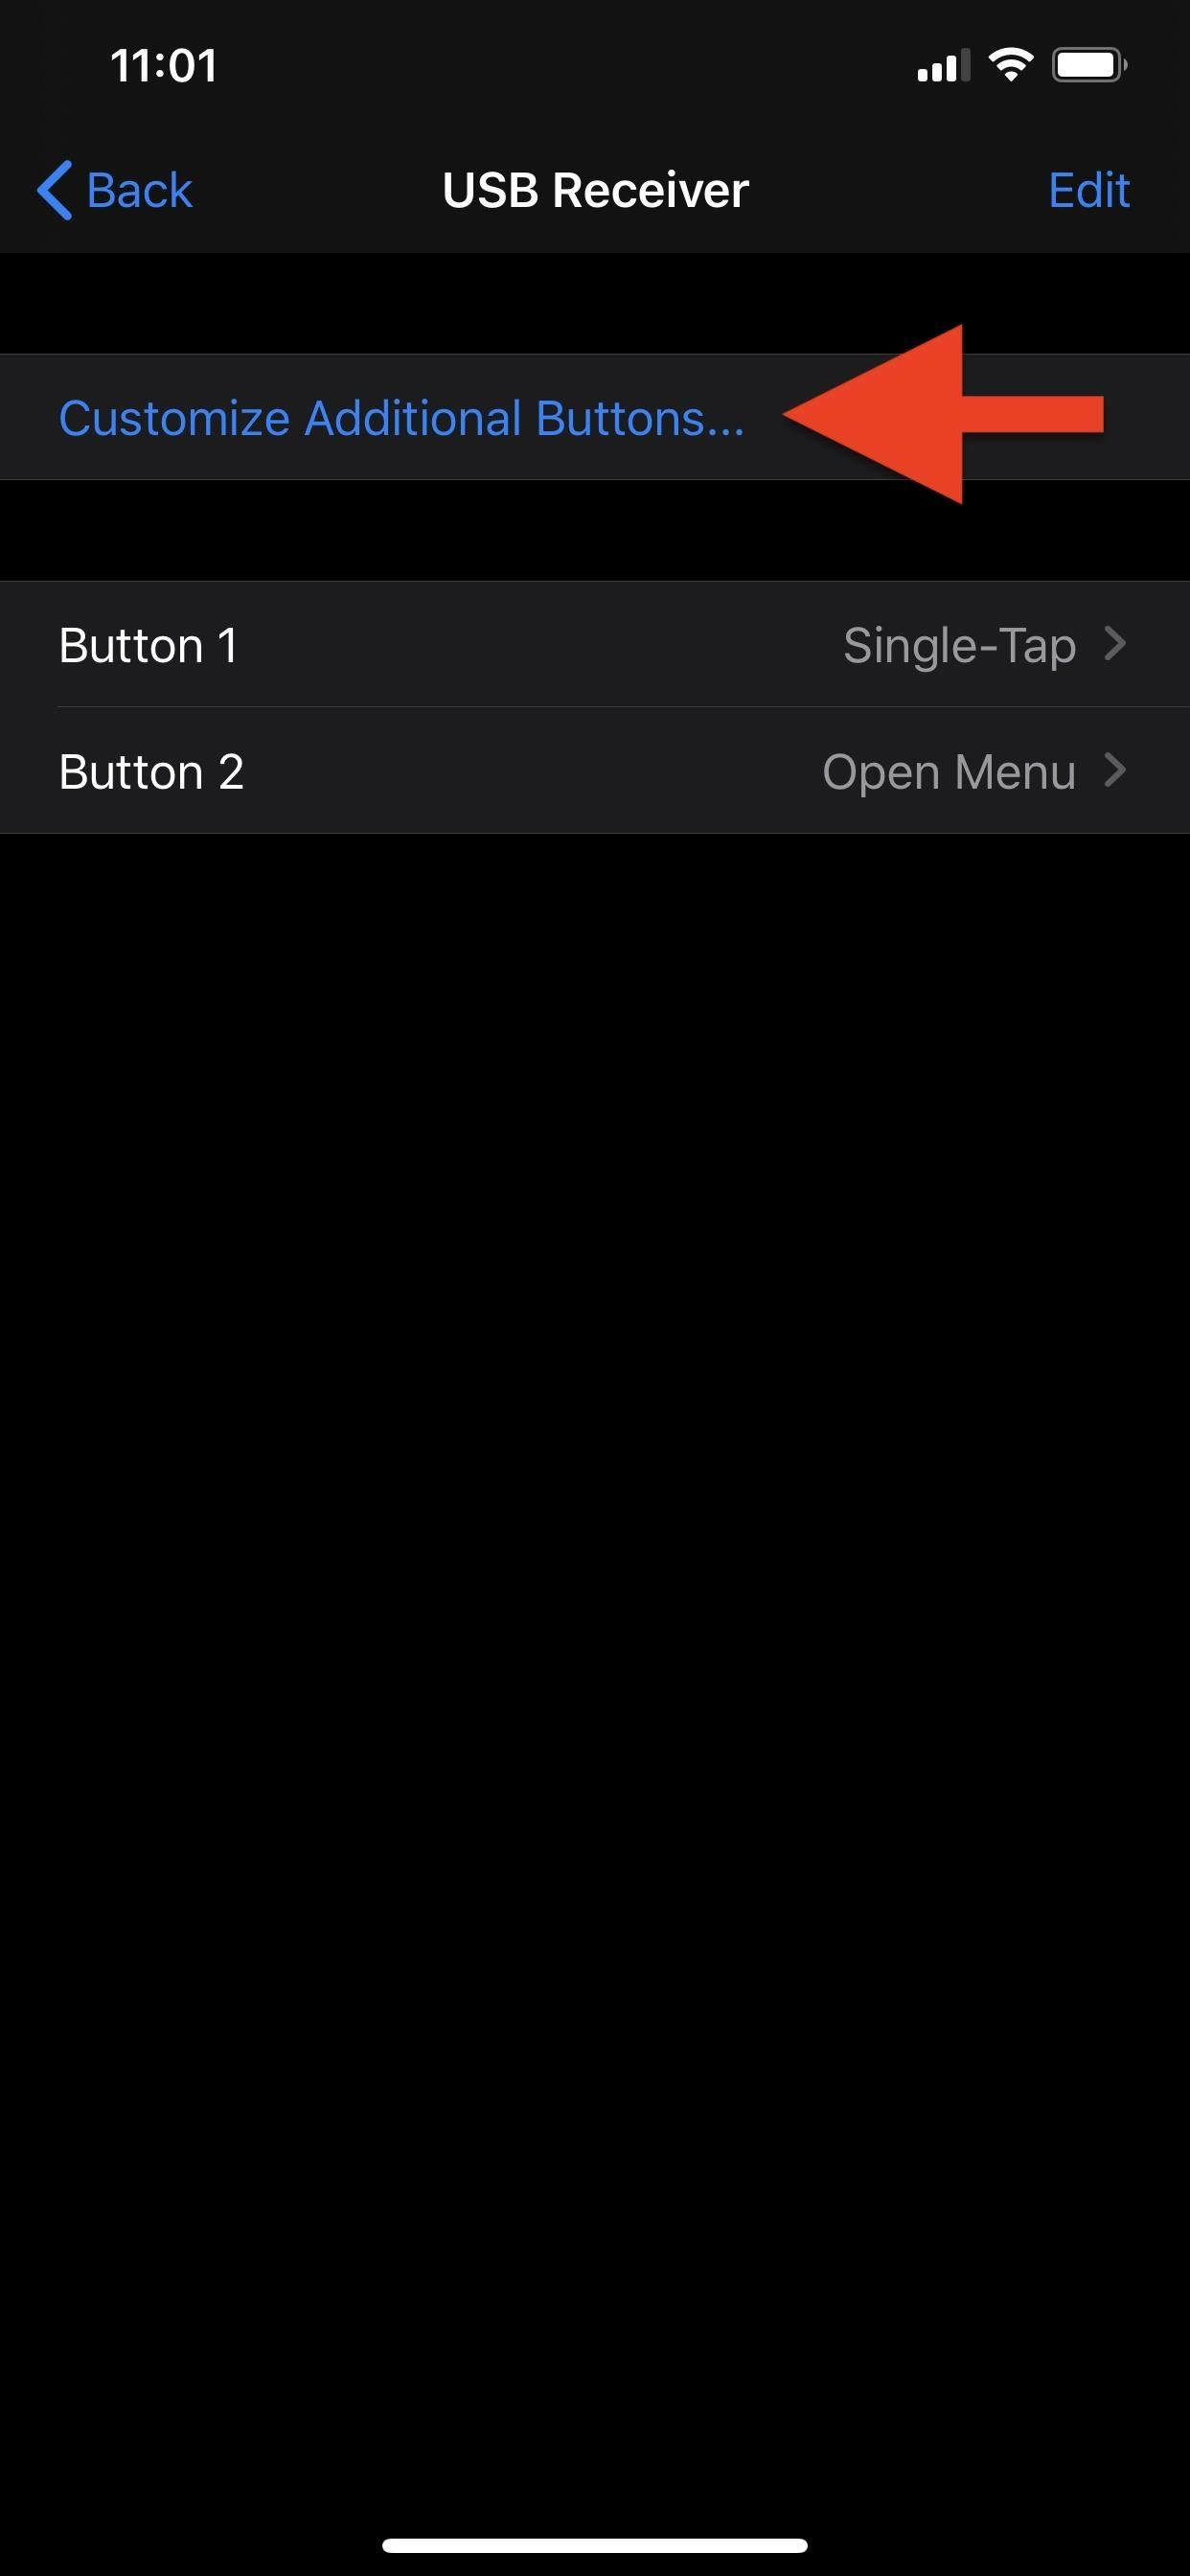 Setting Up and Using a Bluetooth Mouse on Your iPhone on iOS 13